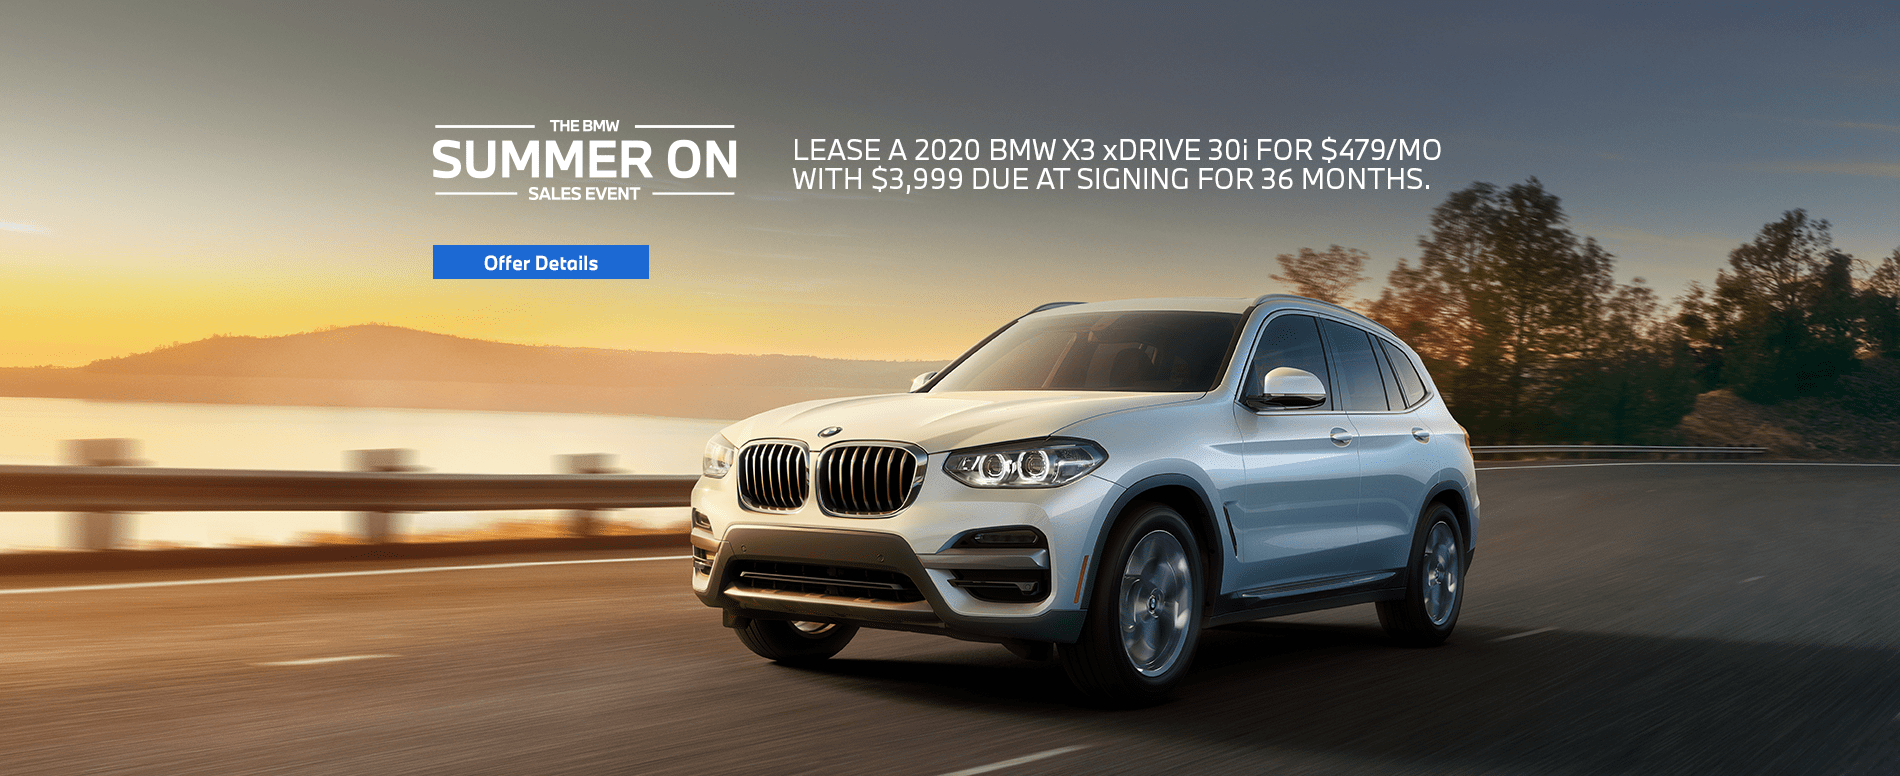 A reliable 2020 BMW X7 driving on an open road